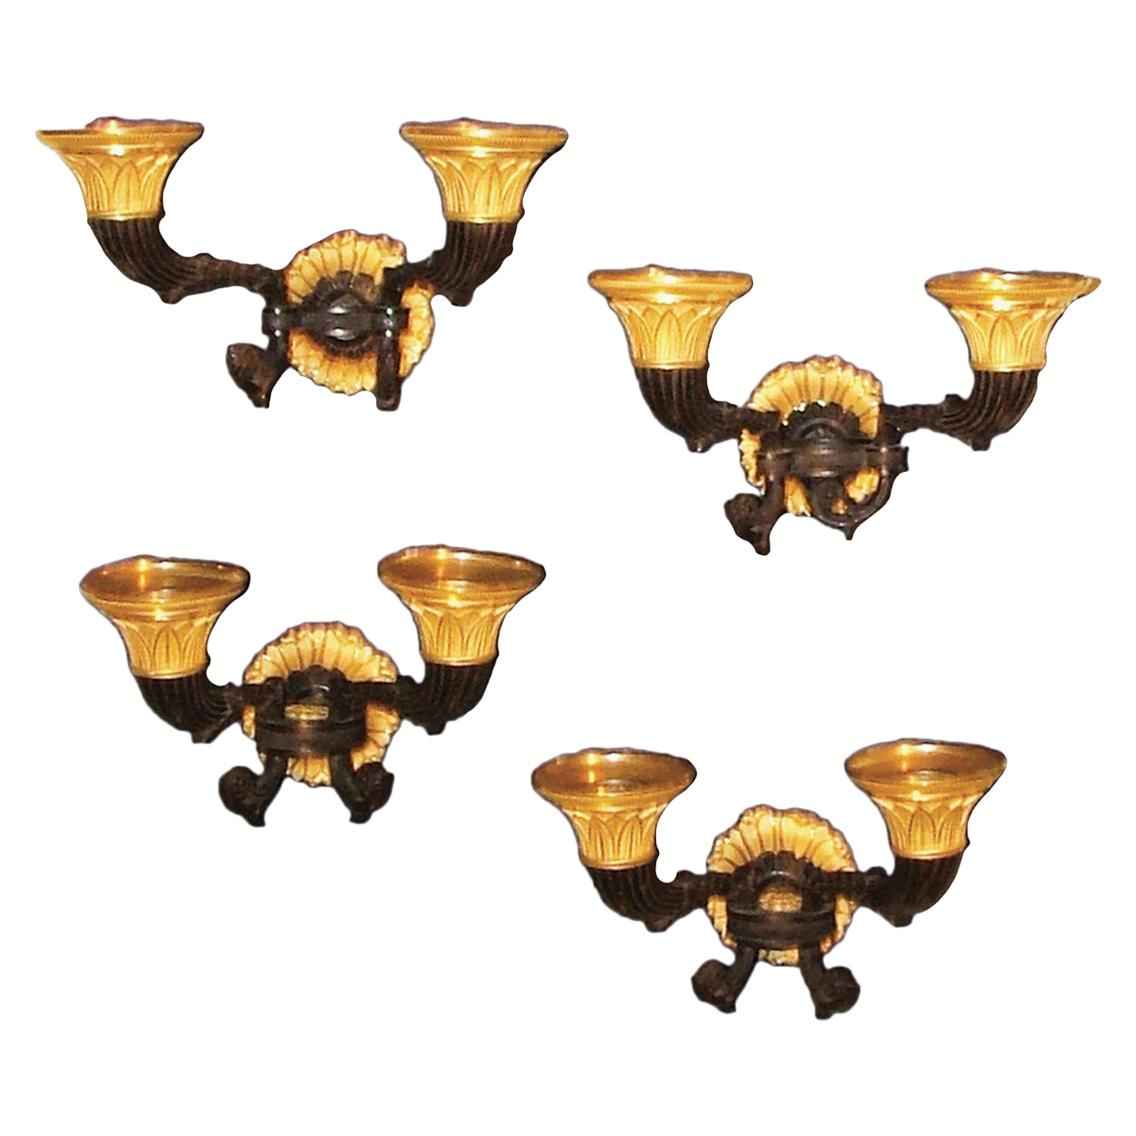 4 Early 19th Century French Bronze and Ormolu Wall Lights